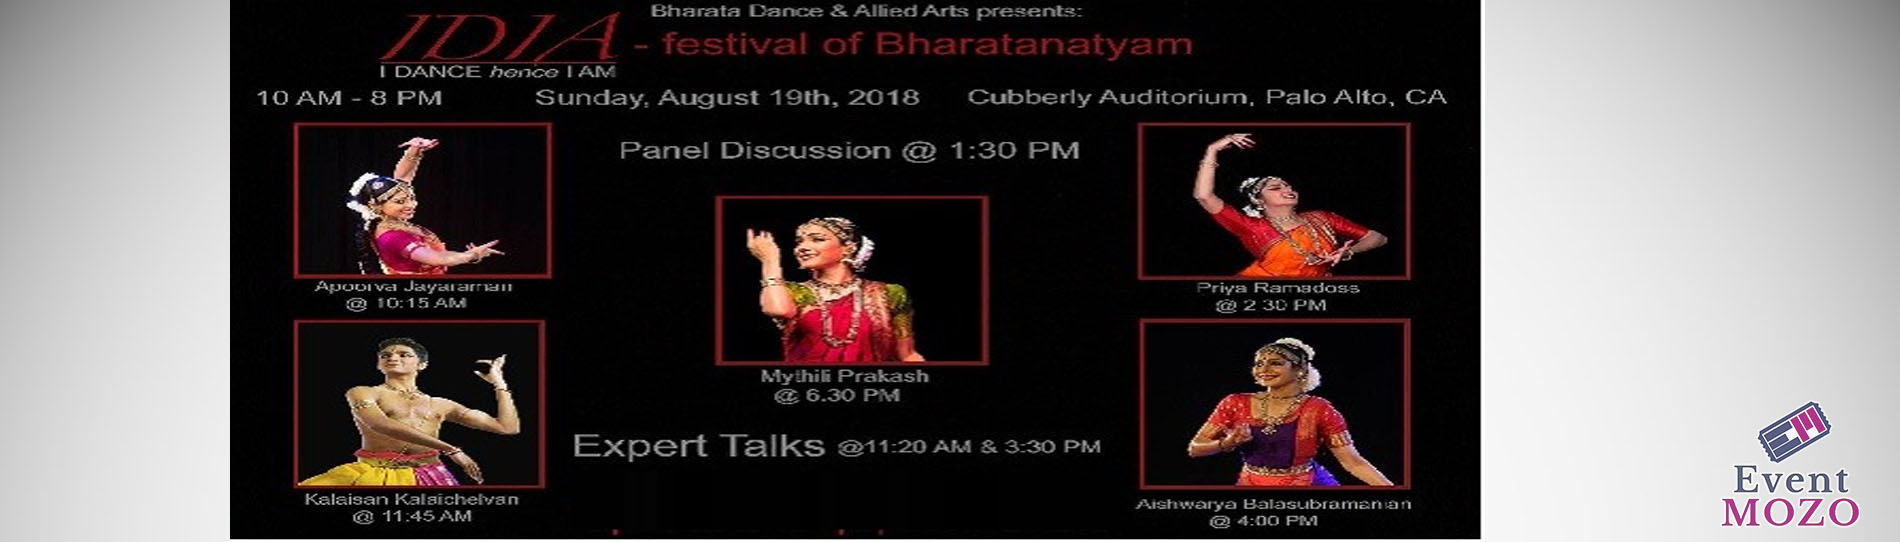 EventMozo IDIA: I DANCE hence I AM - a festival of Bharatanatyam